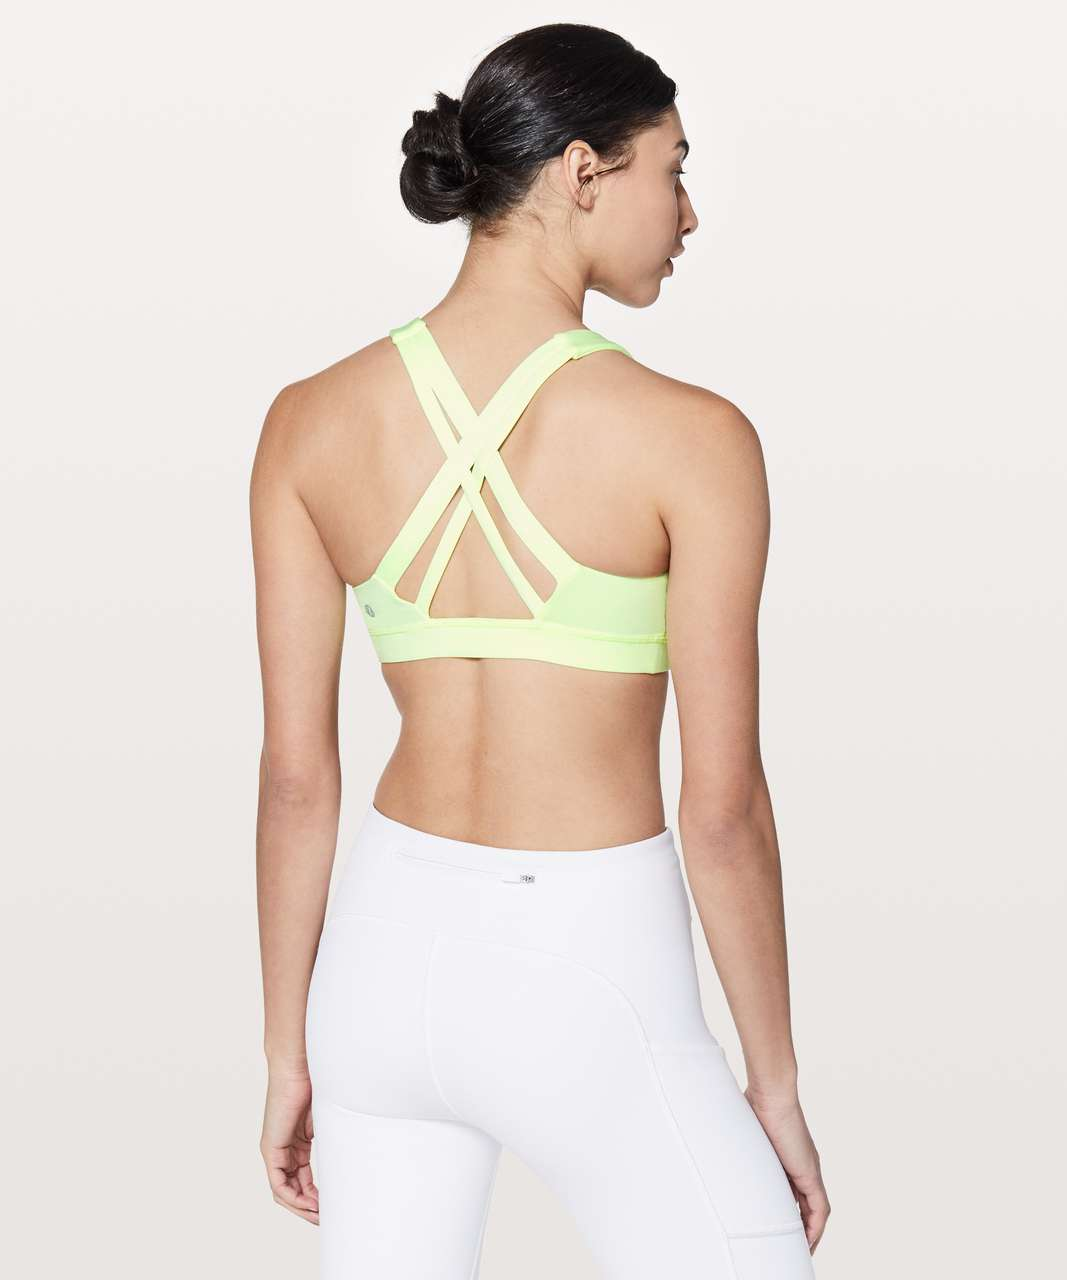 Lululemon Stash N' Run Bra - Fluro Citrus